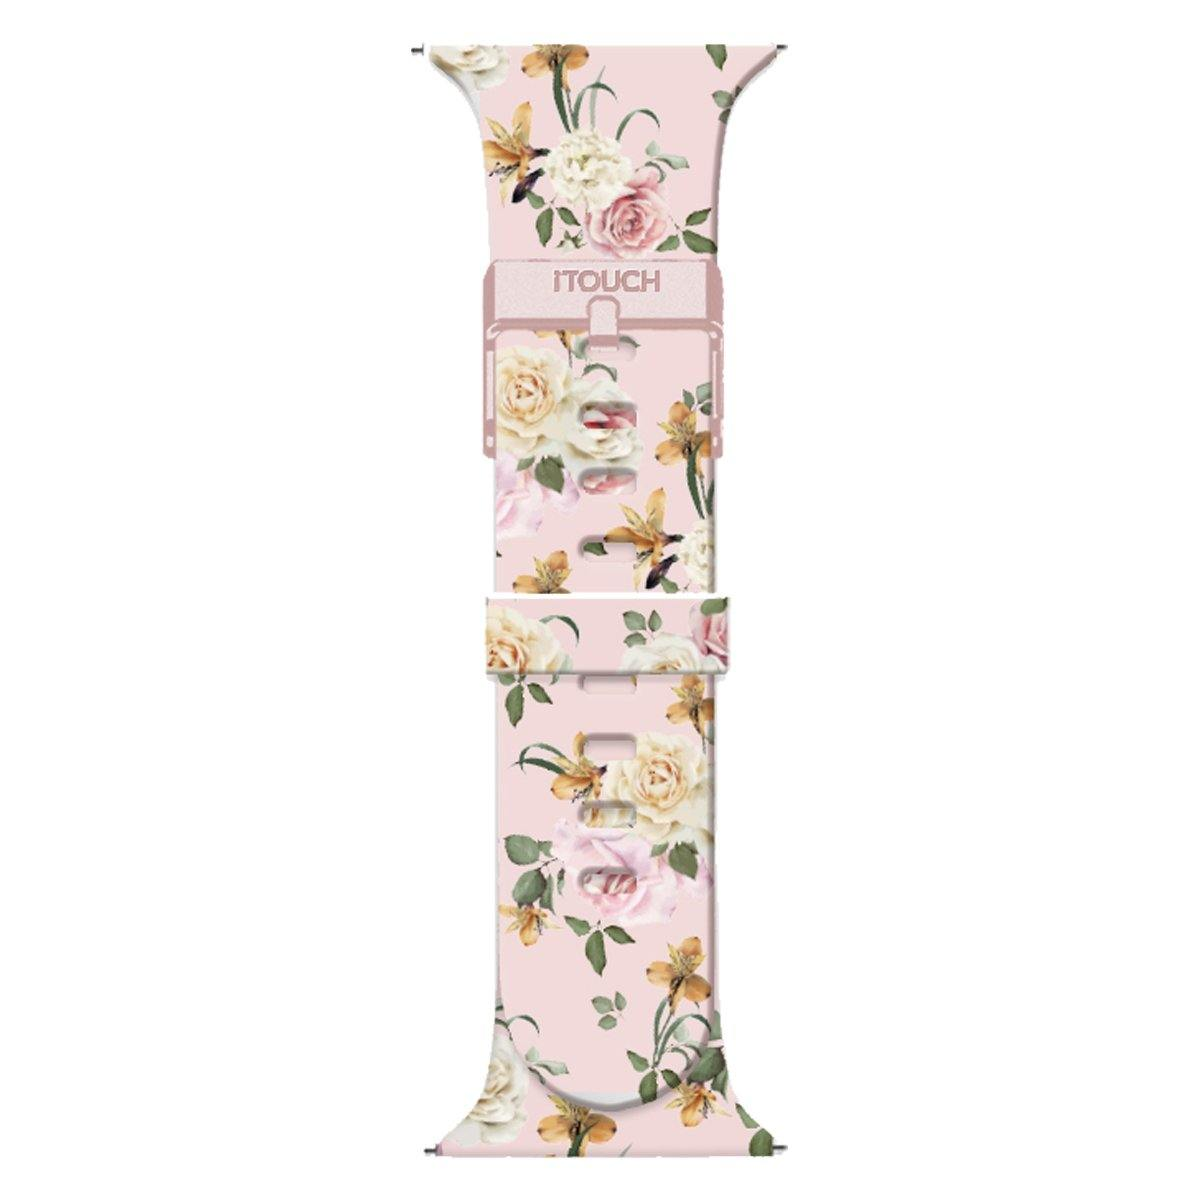 iTouch Air SE Silicone Strap: Blush Floral